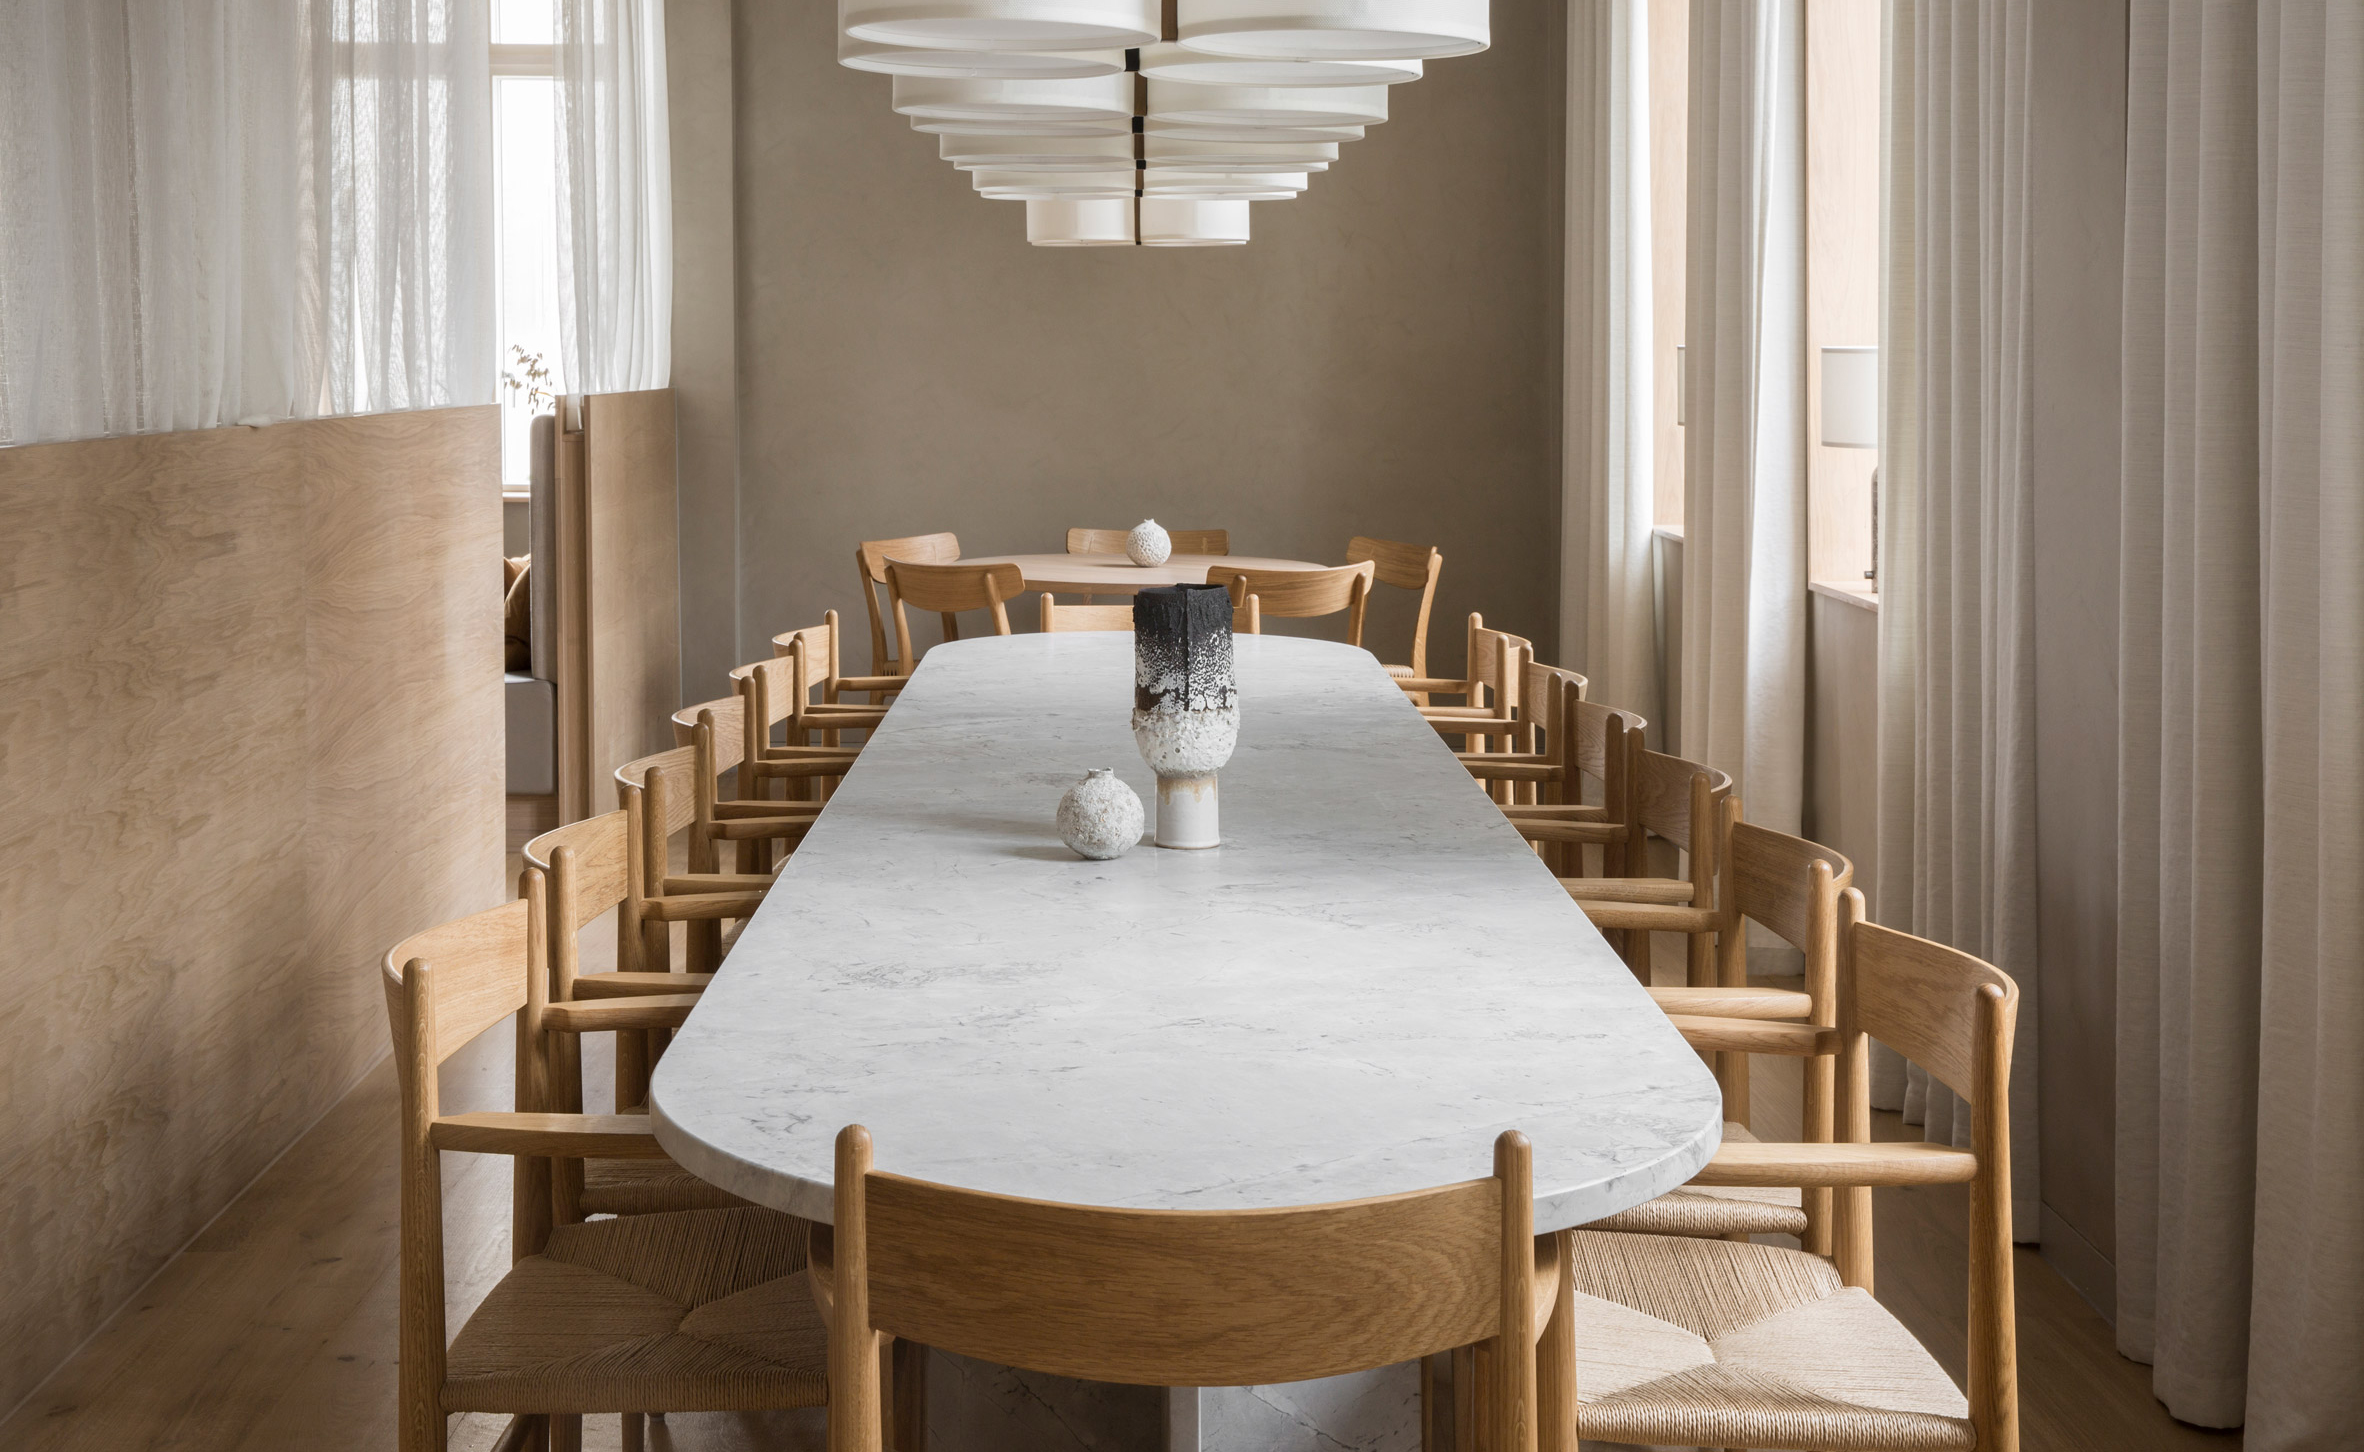 Super Norm Architects Merges Danish And Japanese Influences At Gmtry Best Dining Table And Chair Ideas Images Gmtryco